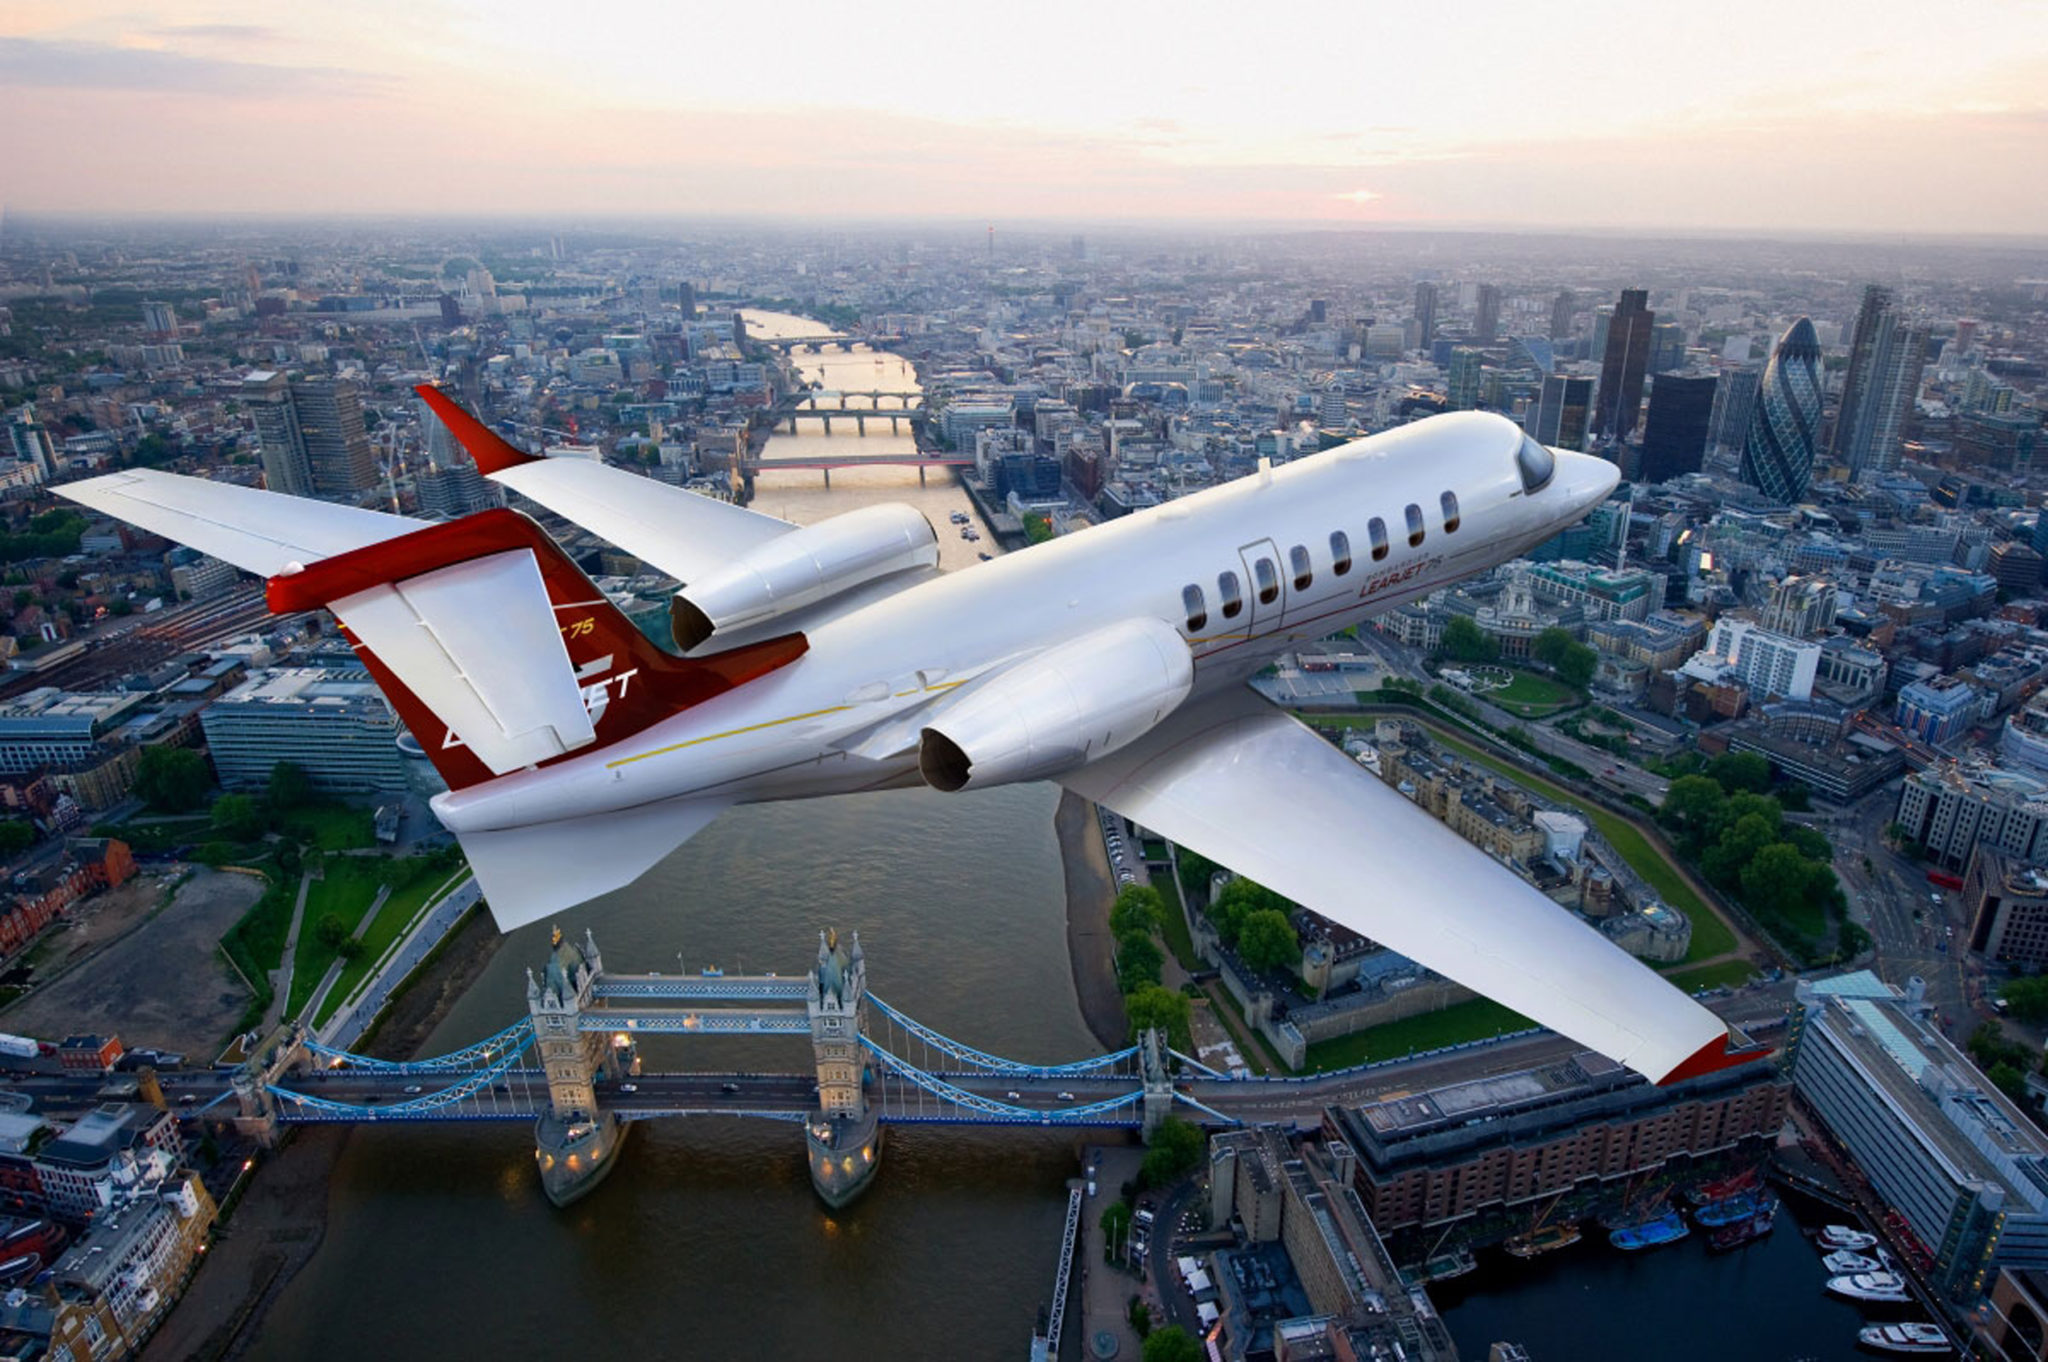 Learjet 75 to debut at EBACE 2013